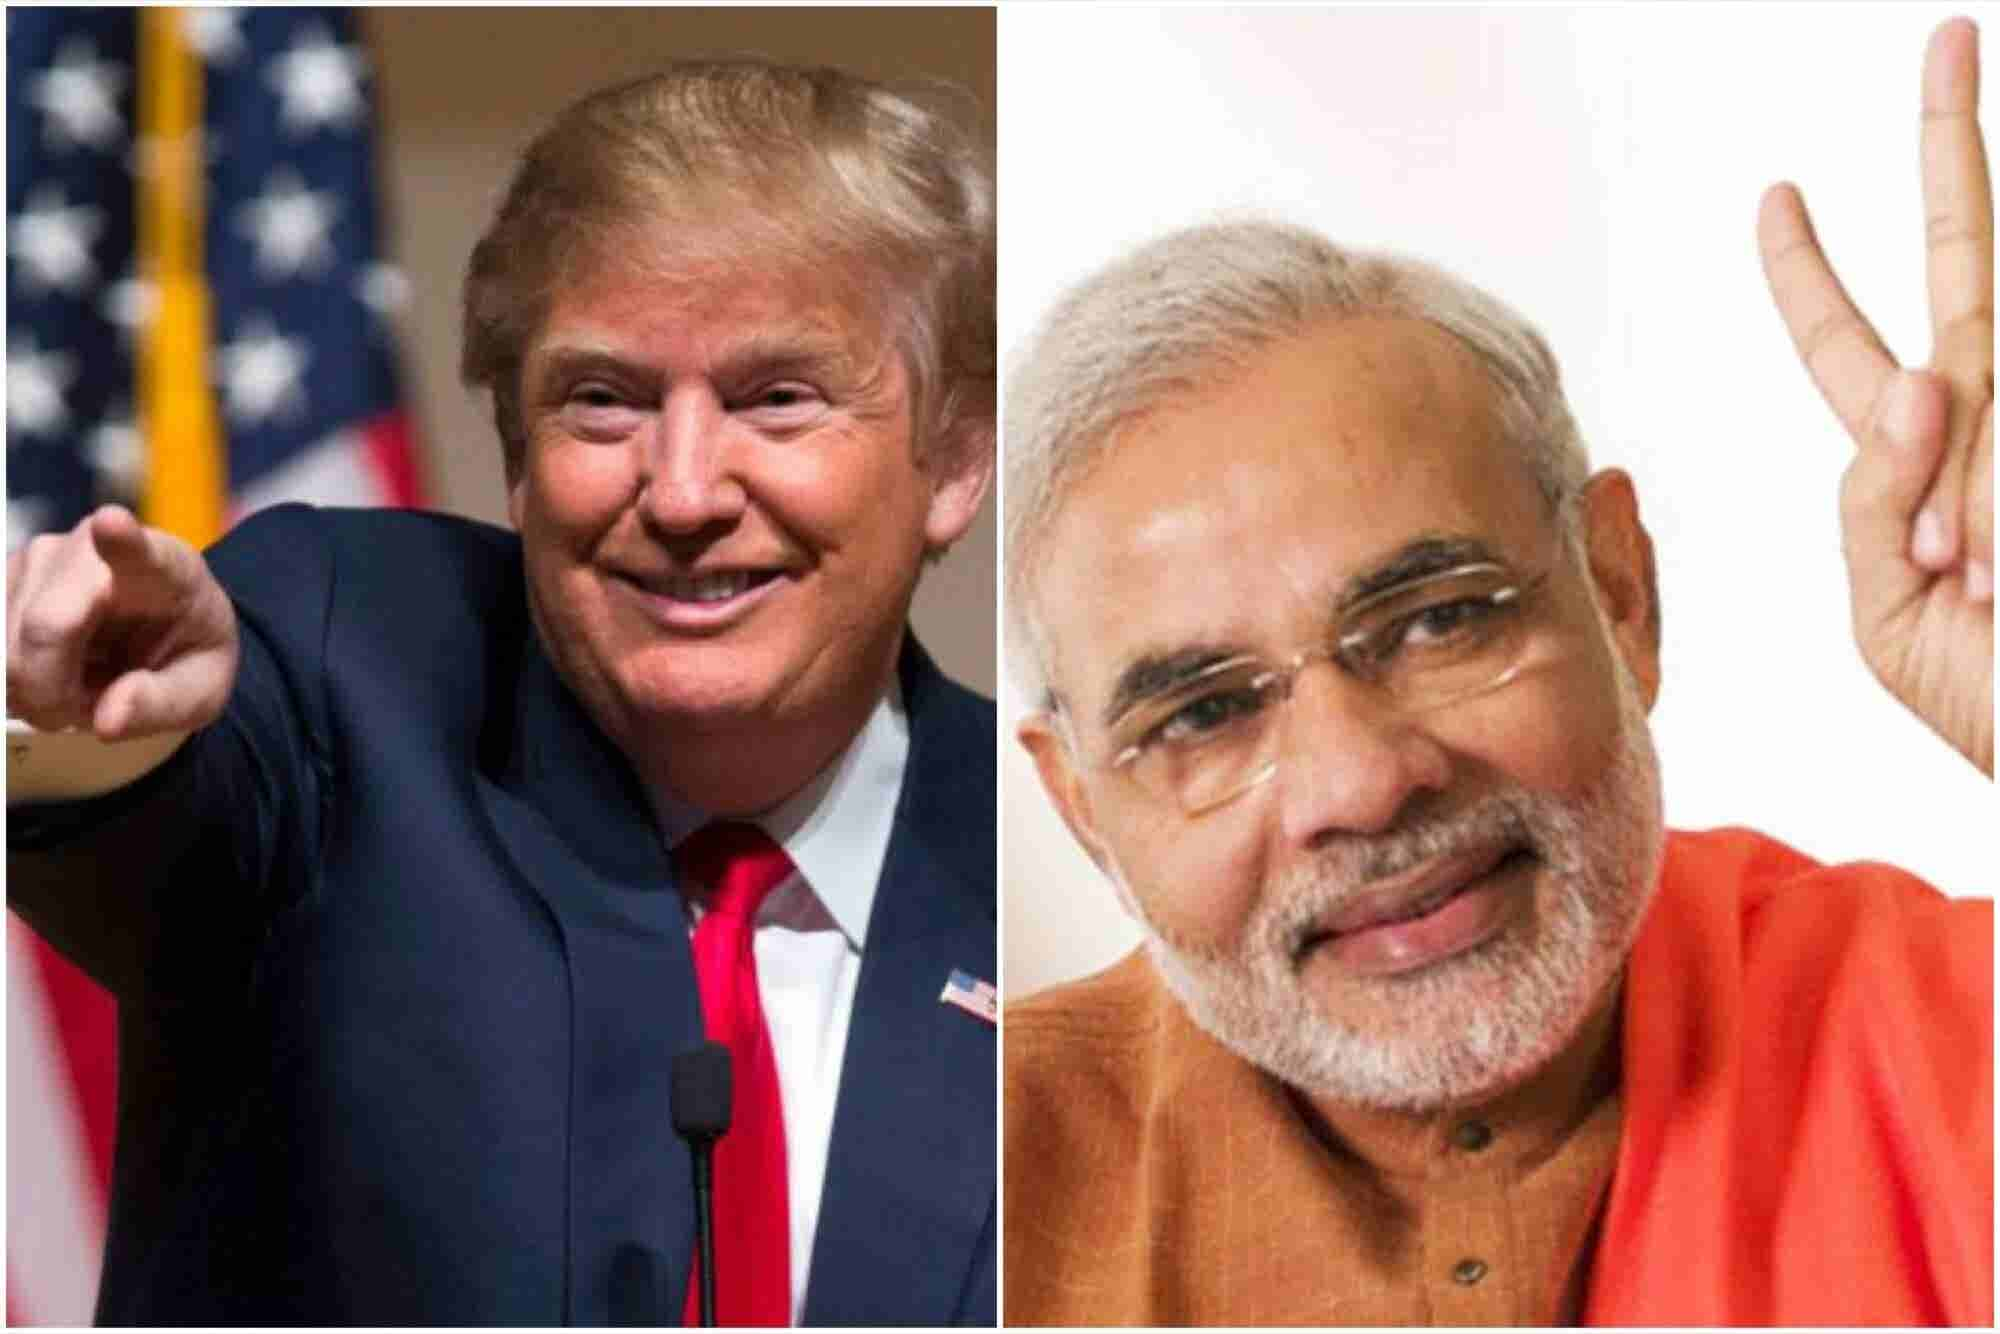 4 Reasons Why Modi-Trump's Bromance Could Turn Into Bizmance